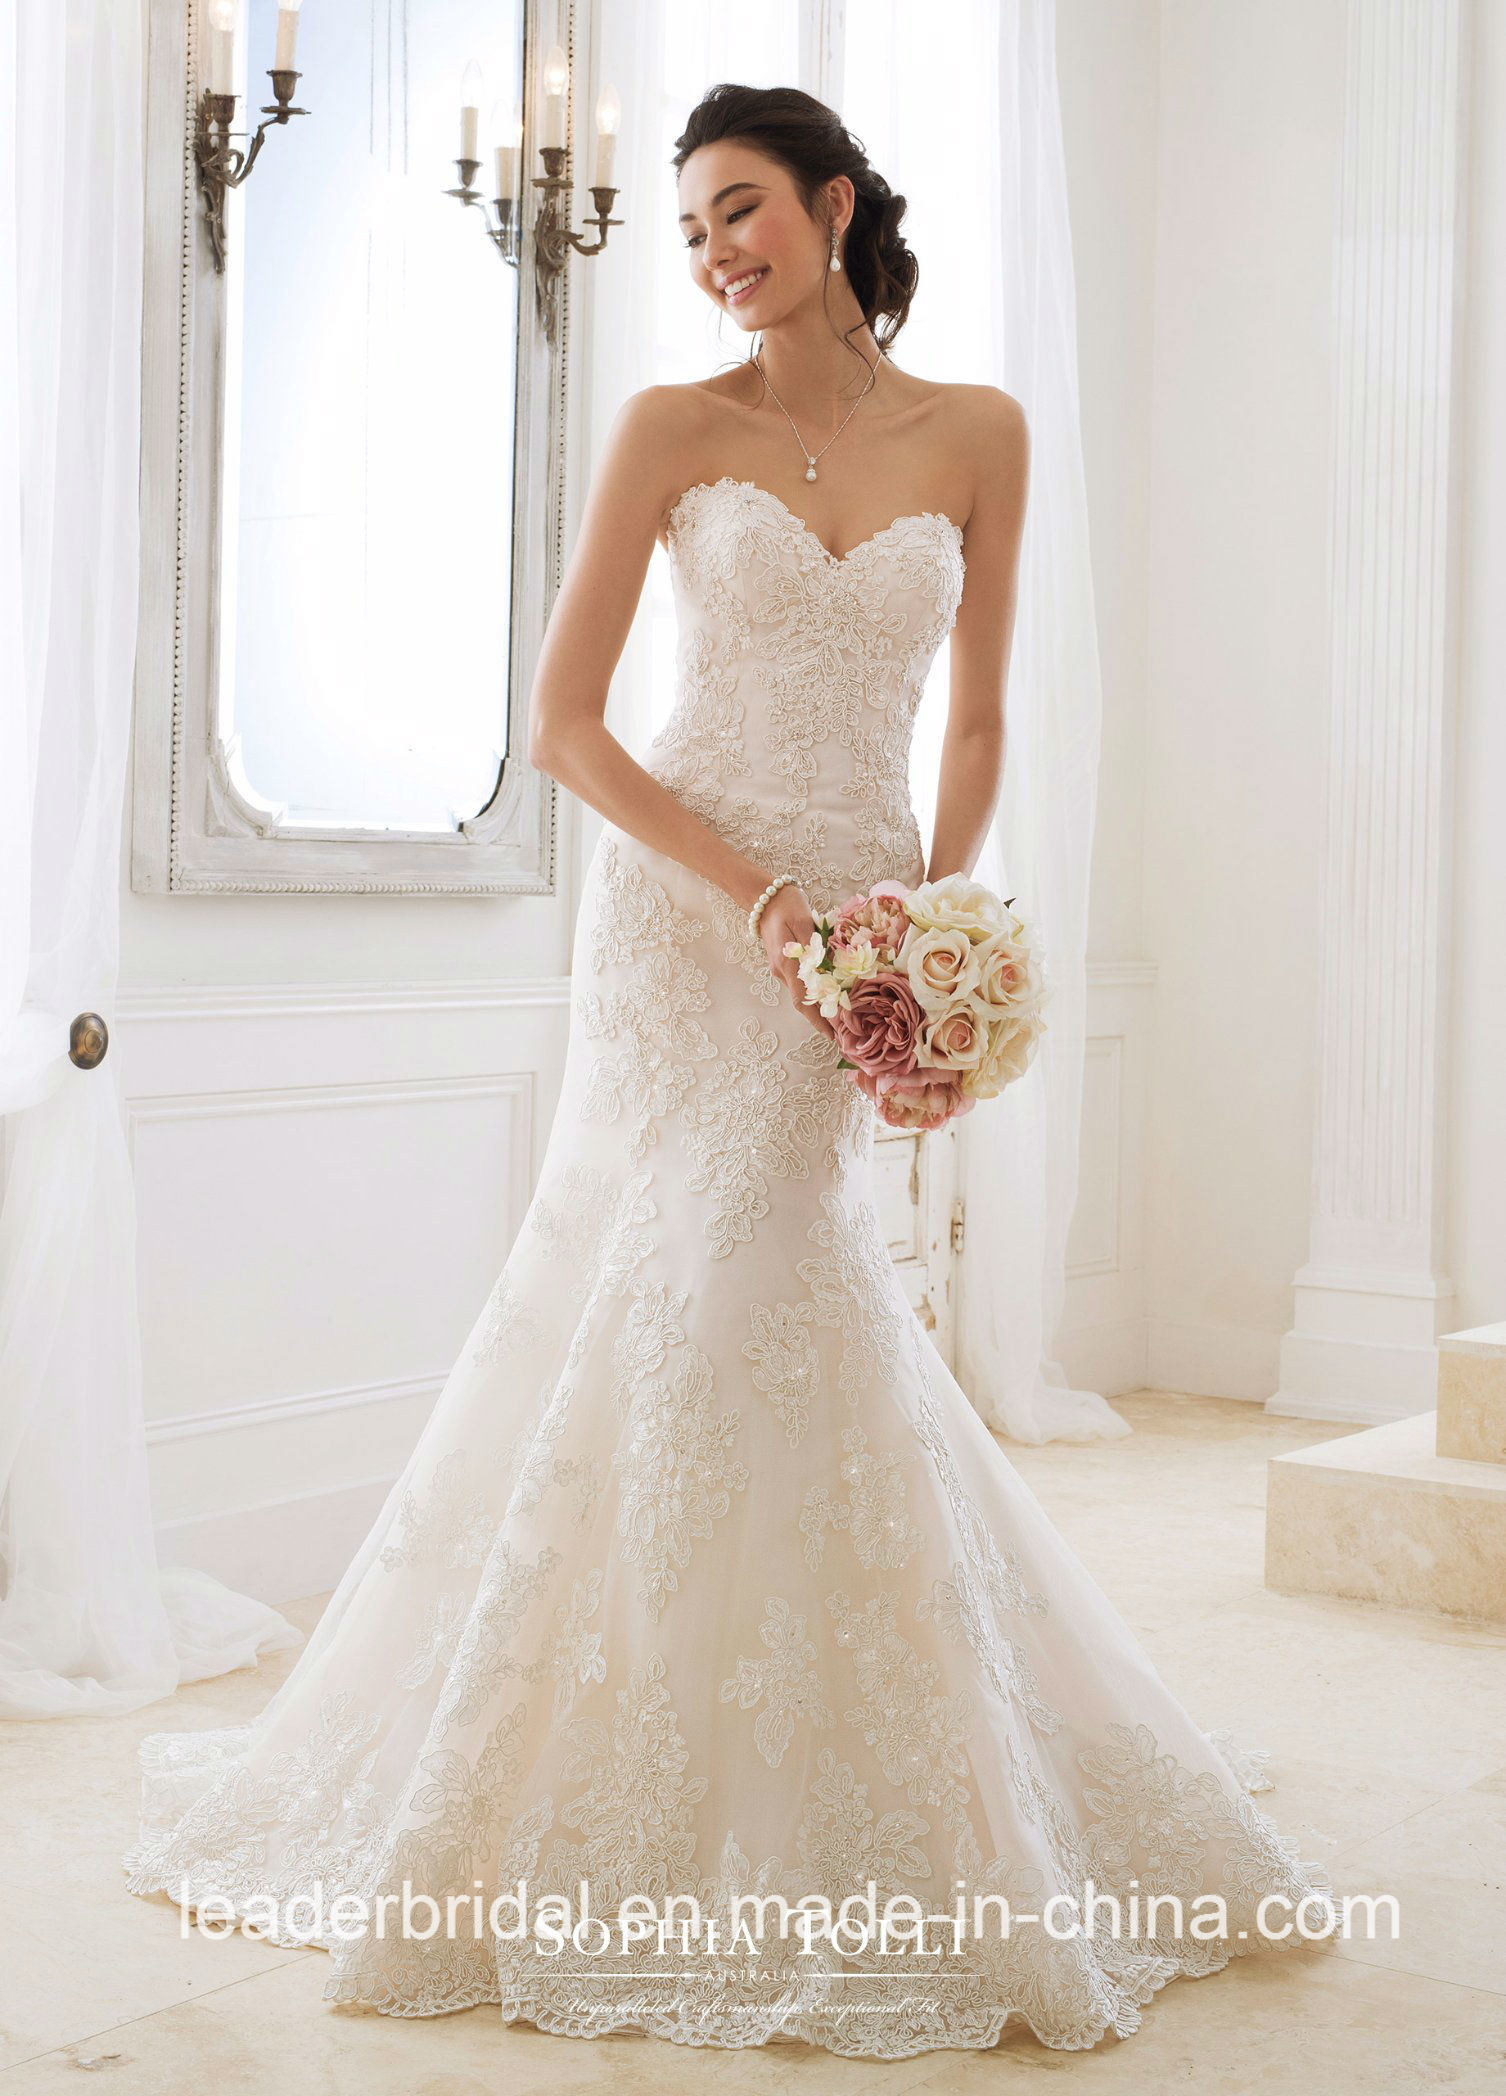 China Strapless Sweetheart Lace Bridal Gowns 2018 New Corset Beaded